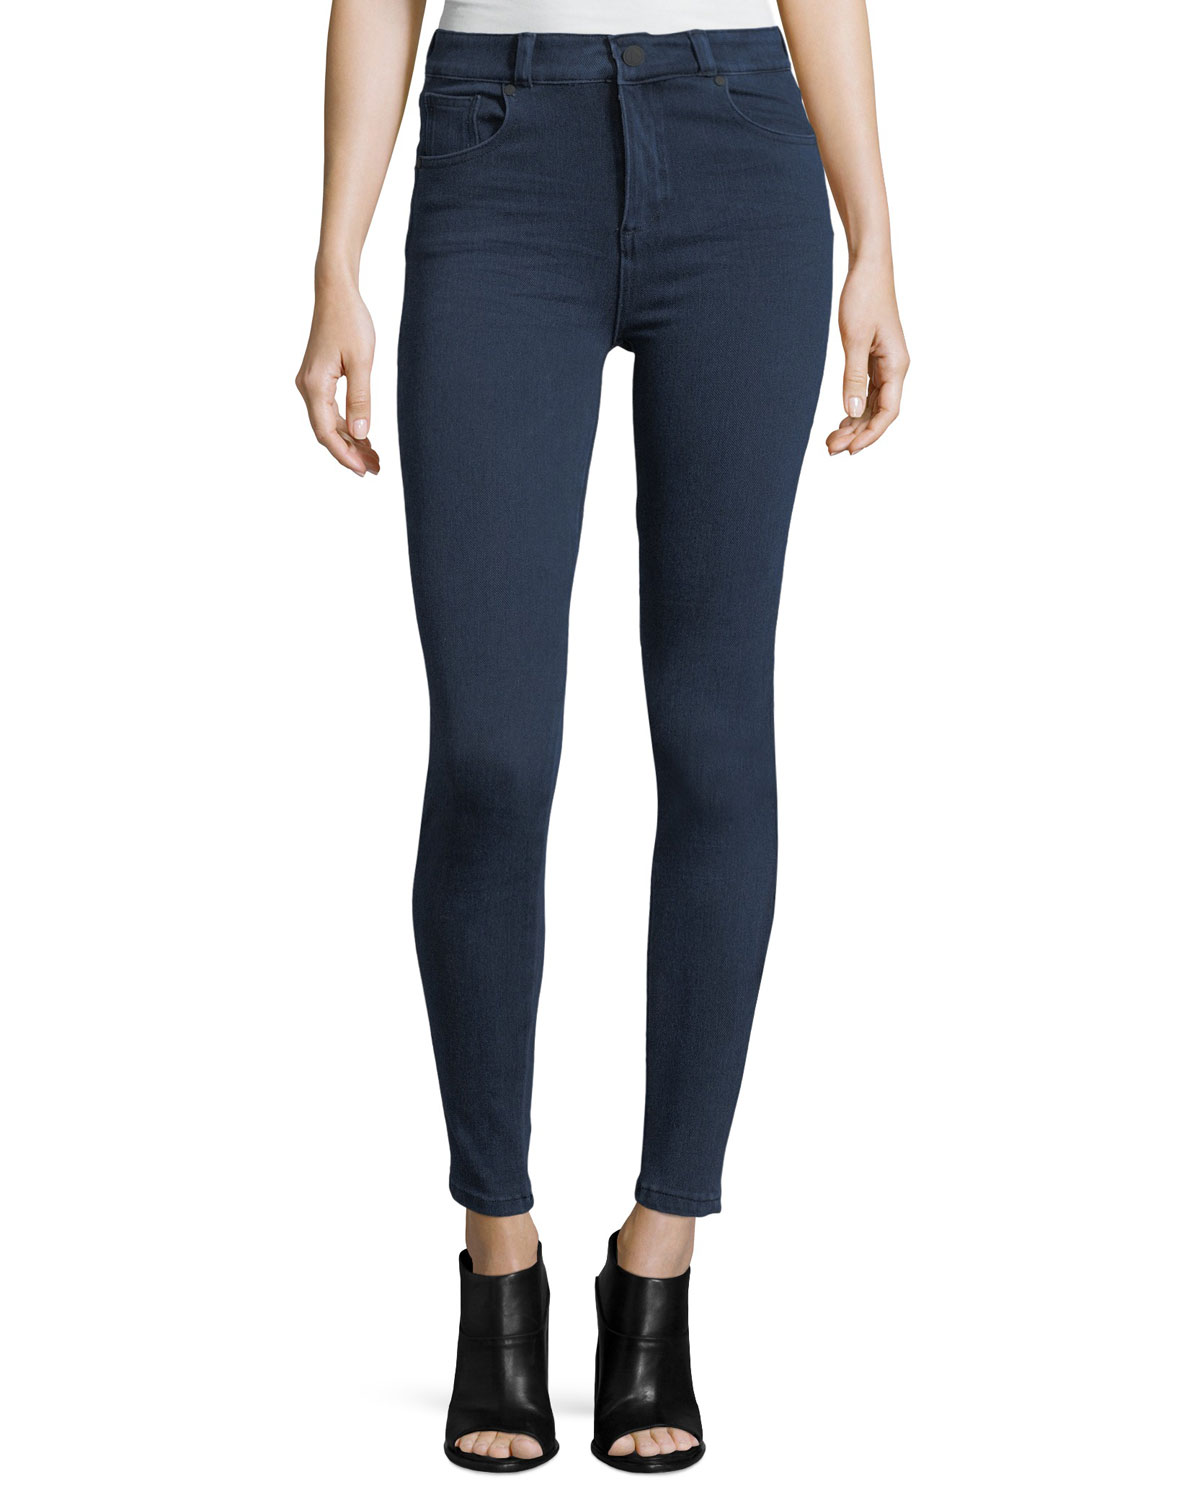 Acynetic Quincy Mid - Rise Skinny - Leg Jeans